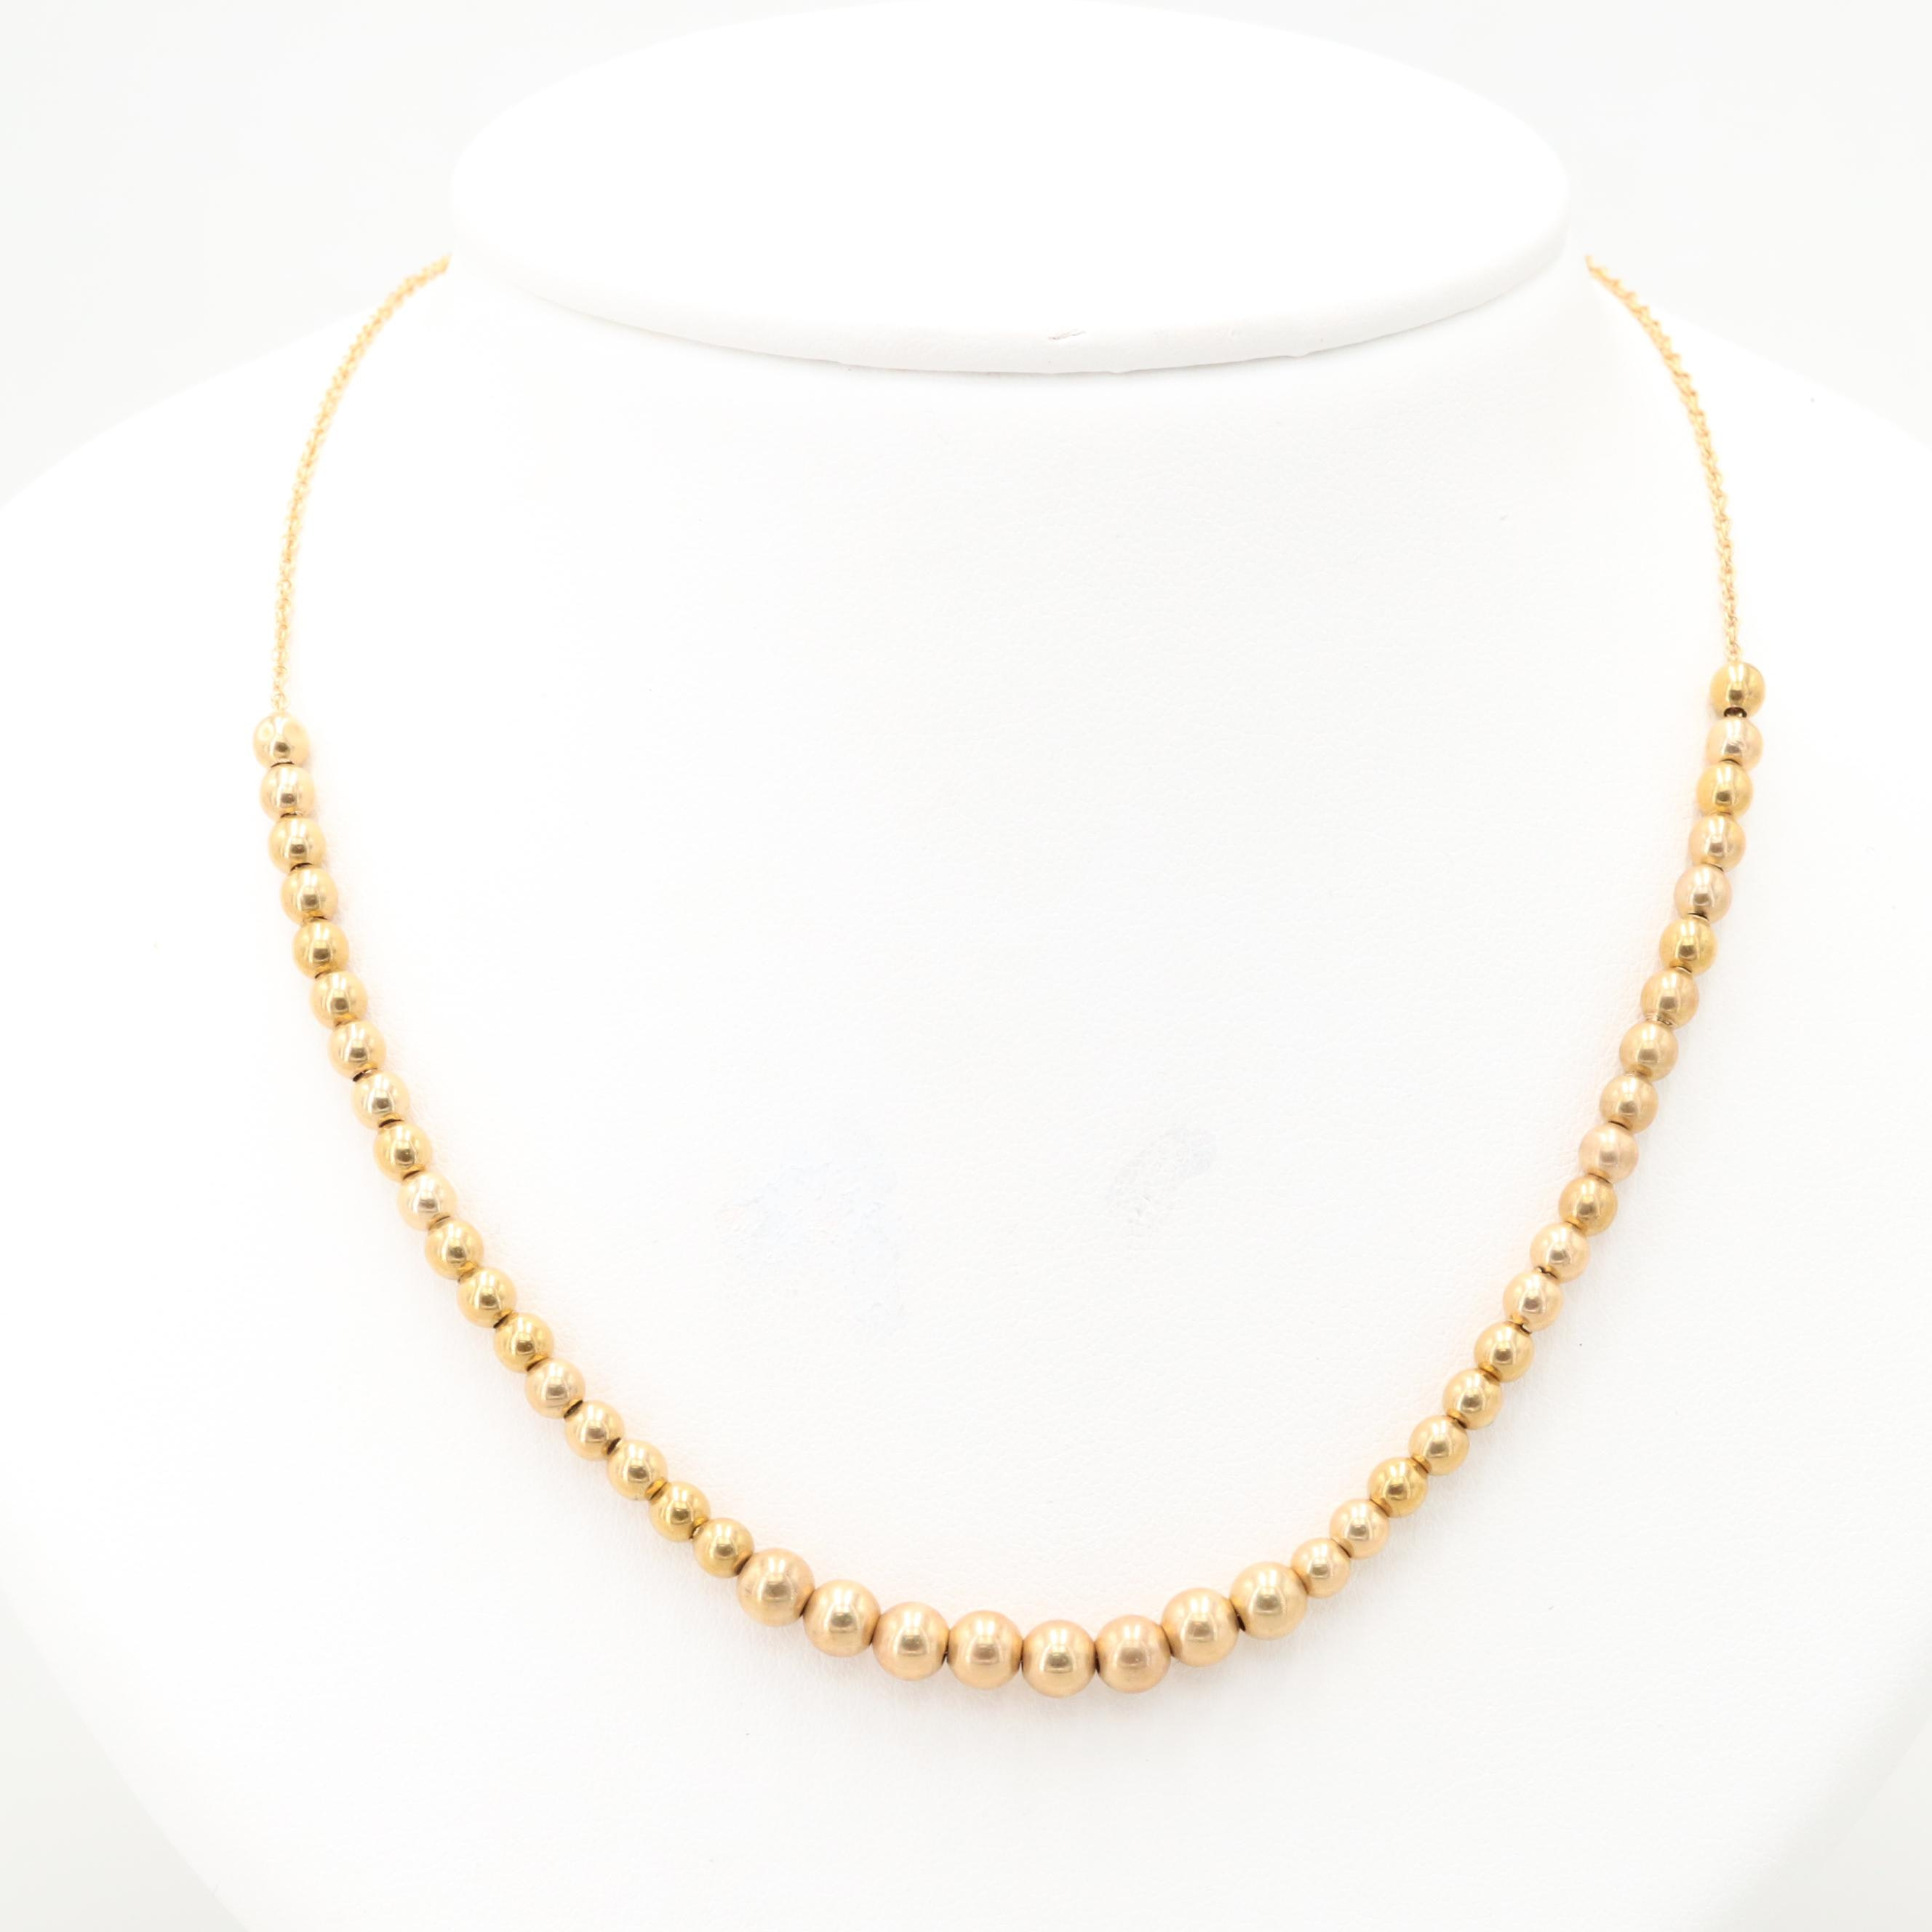 14K Yellow Gold Beaded Chain Necklace